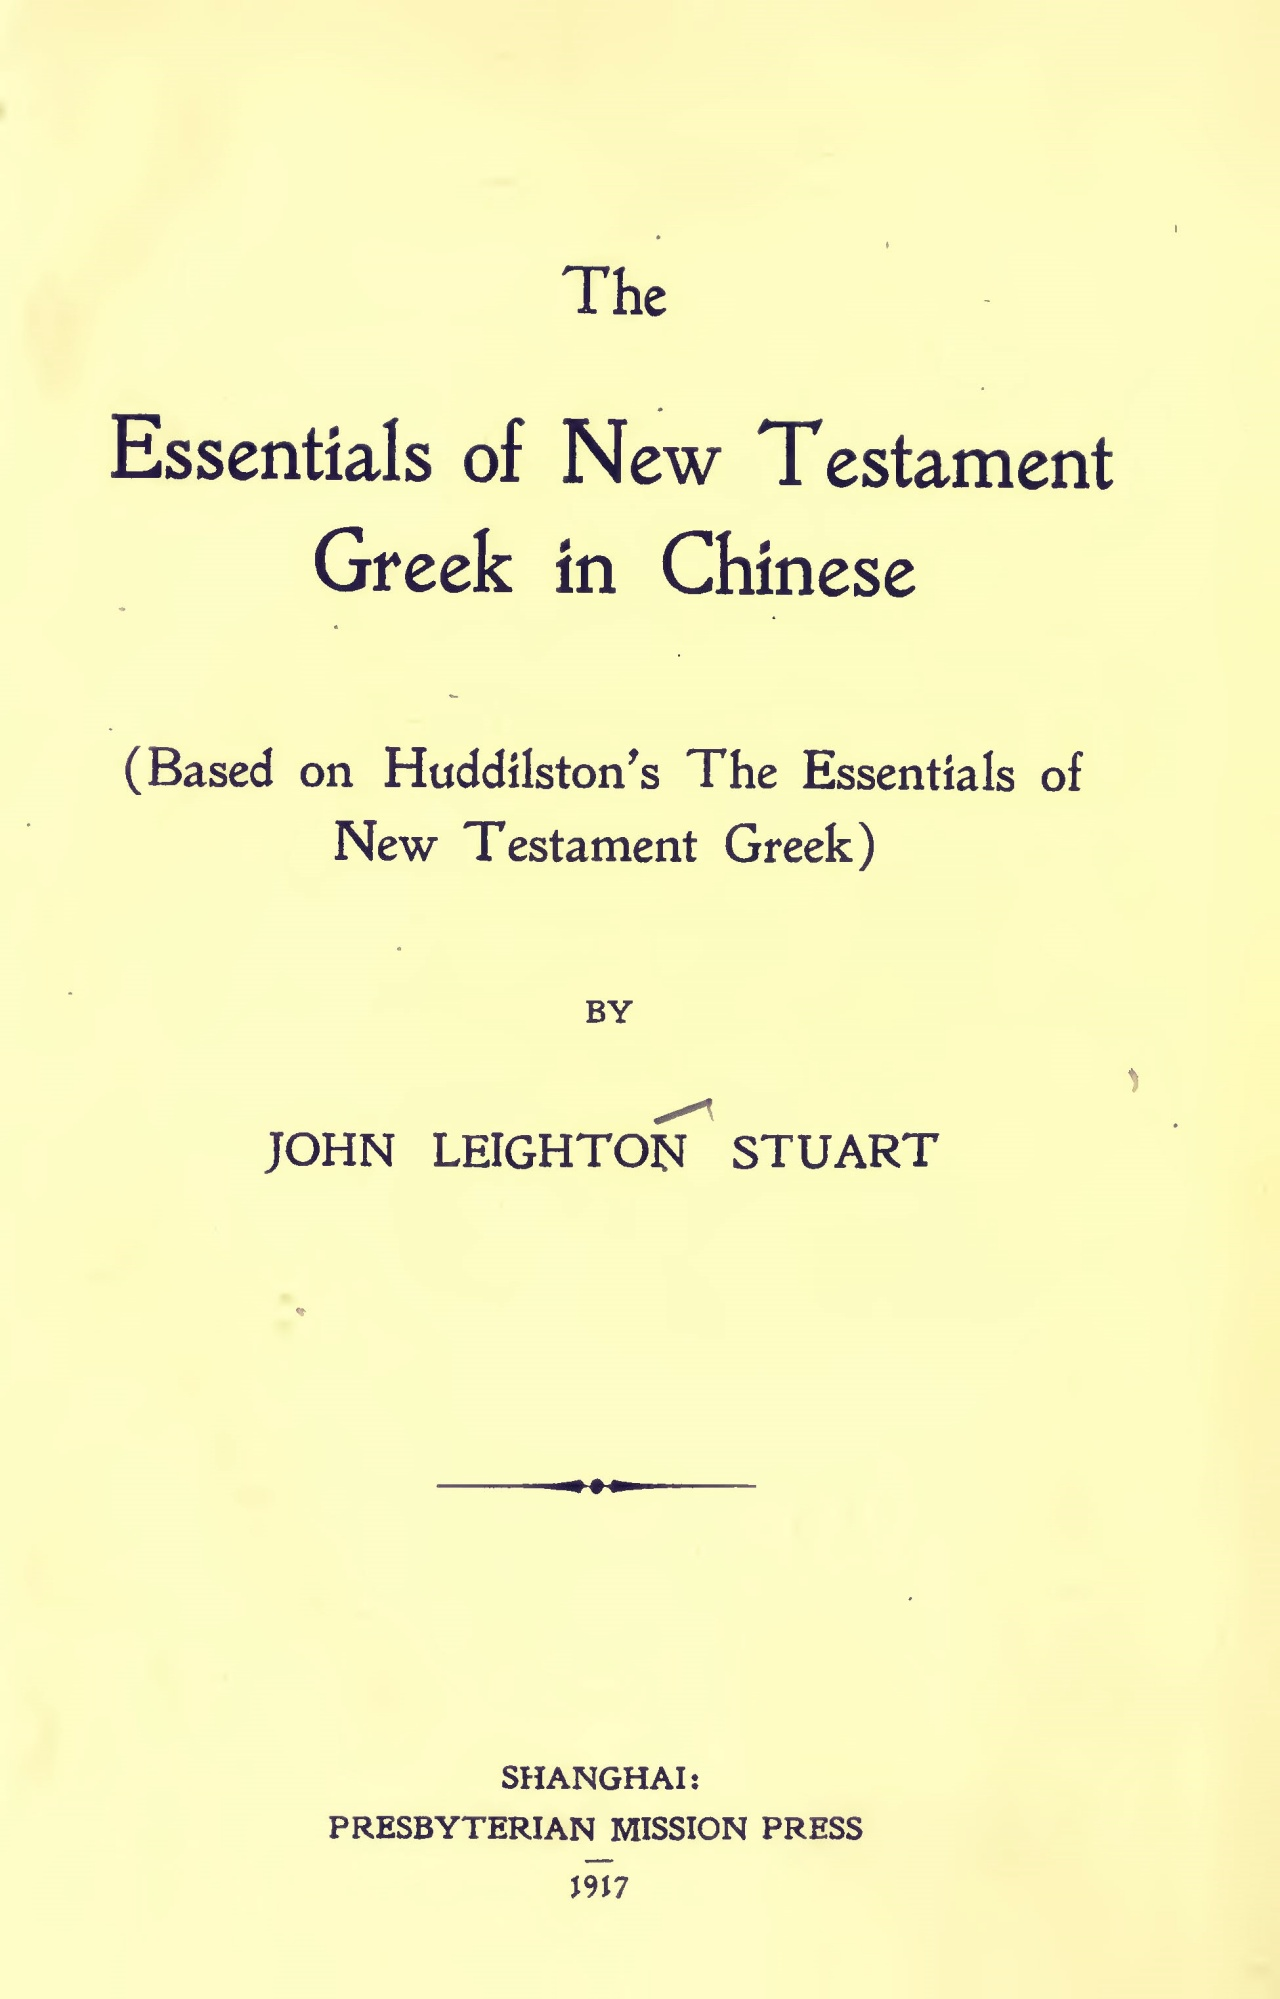 Stuart, John Leighton, The Essentials of New Testament Greek in Chinese Title Page.jpg